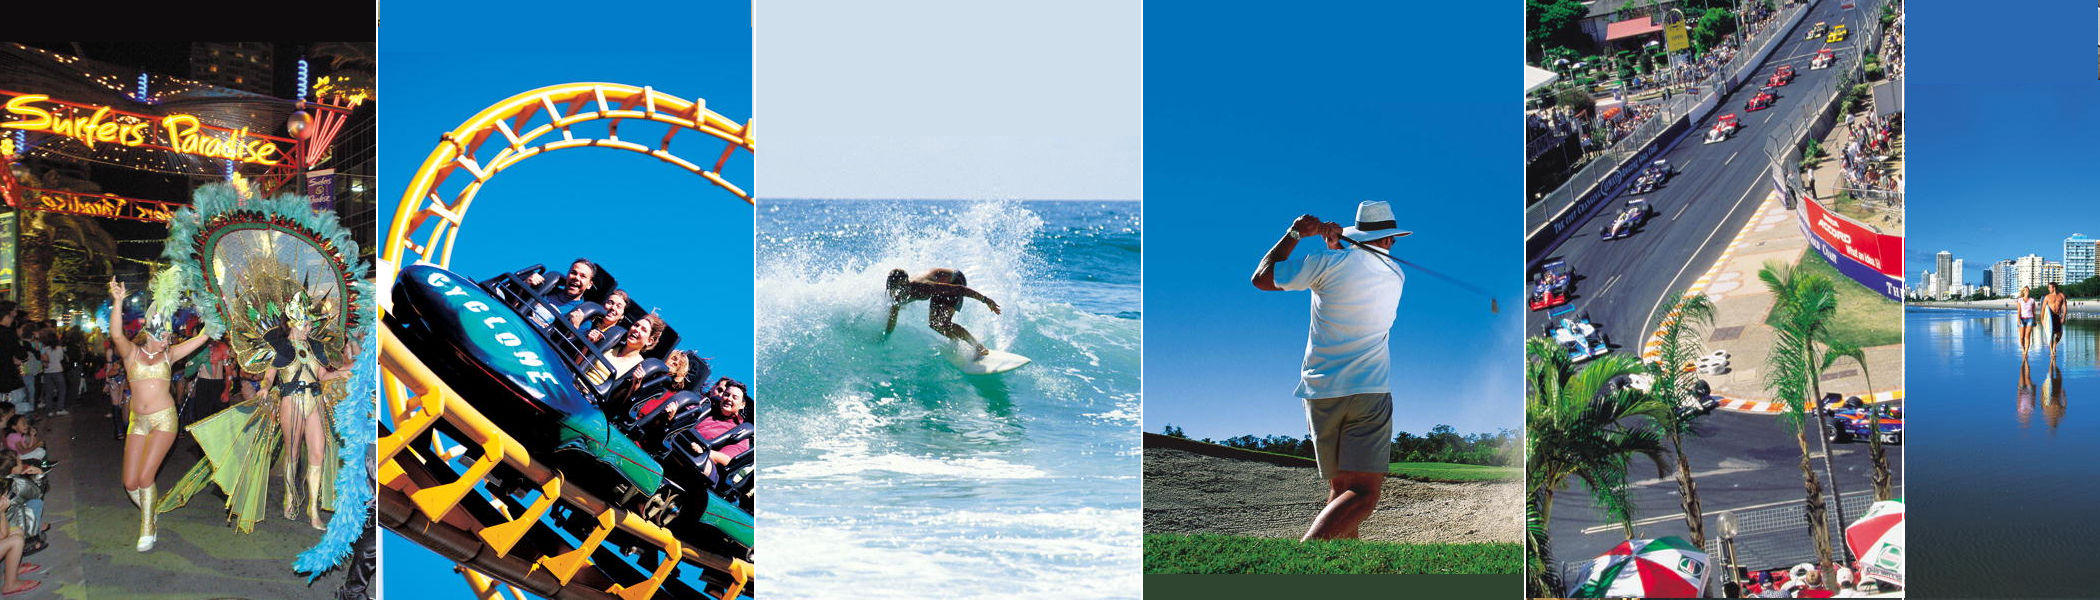 Surfers Paradise Tours & Attractions